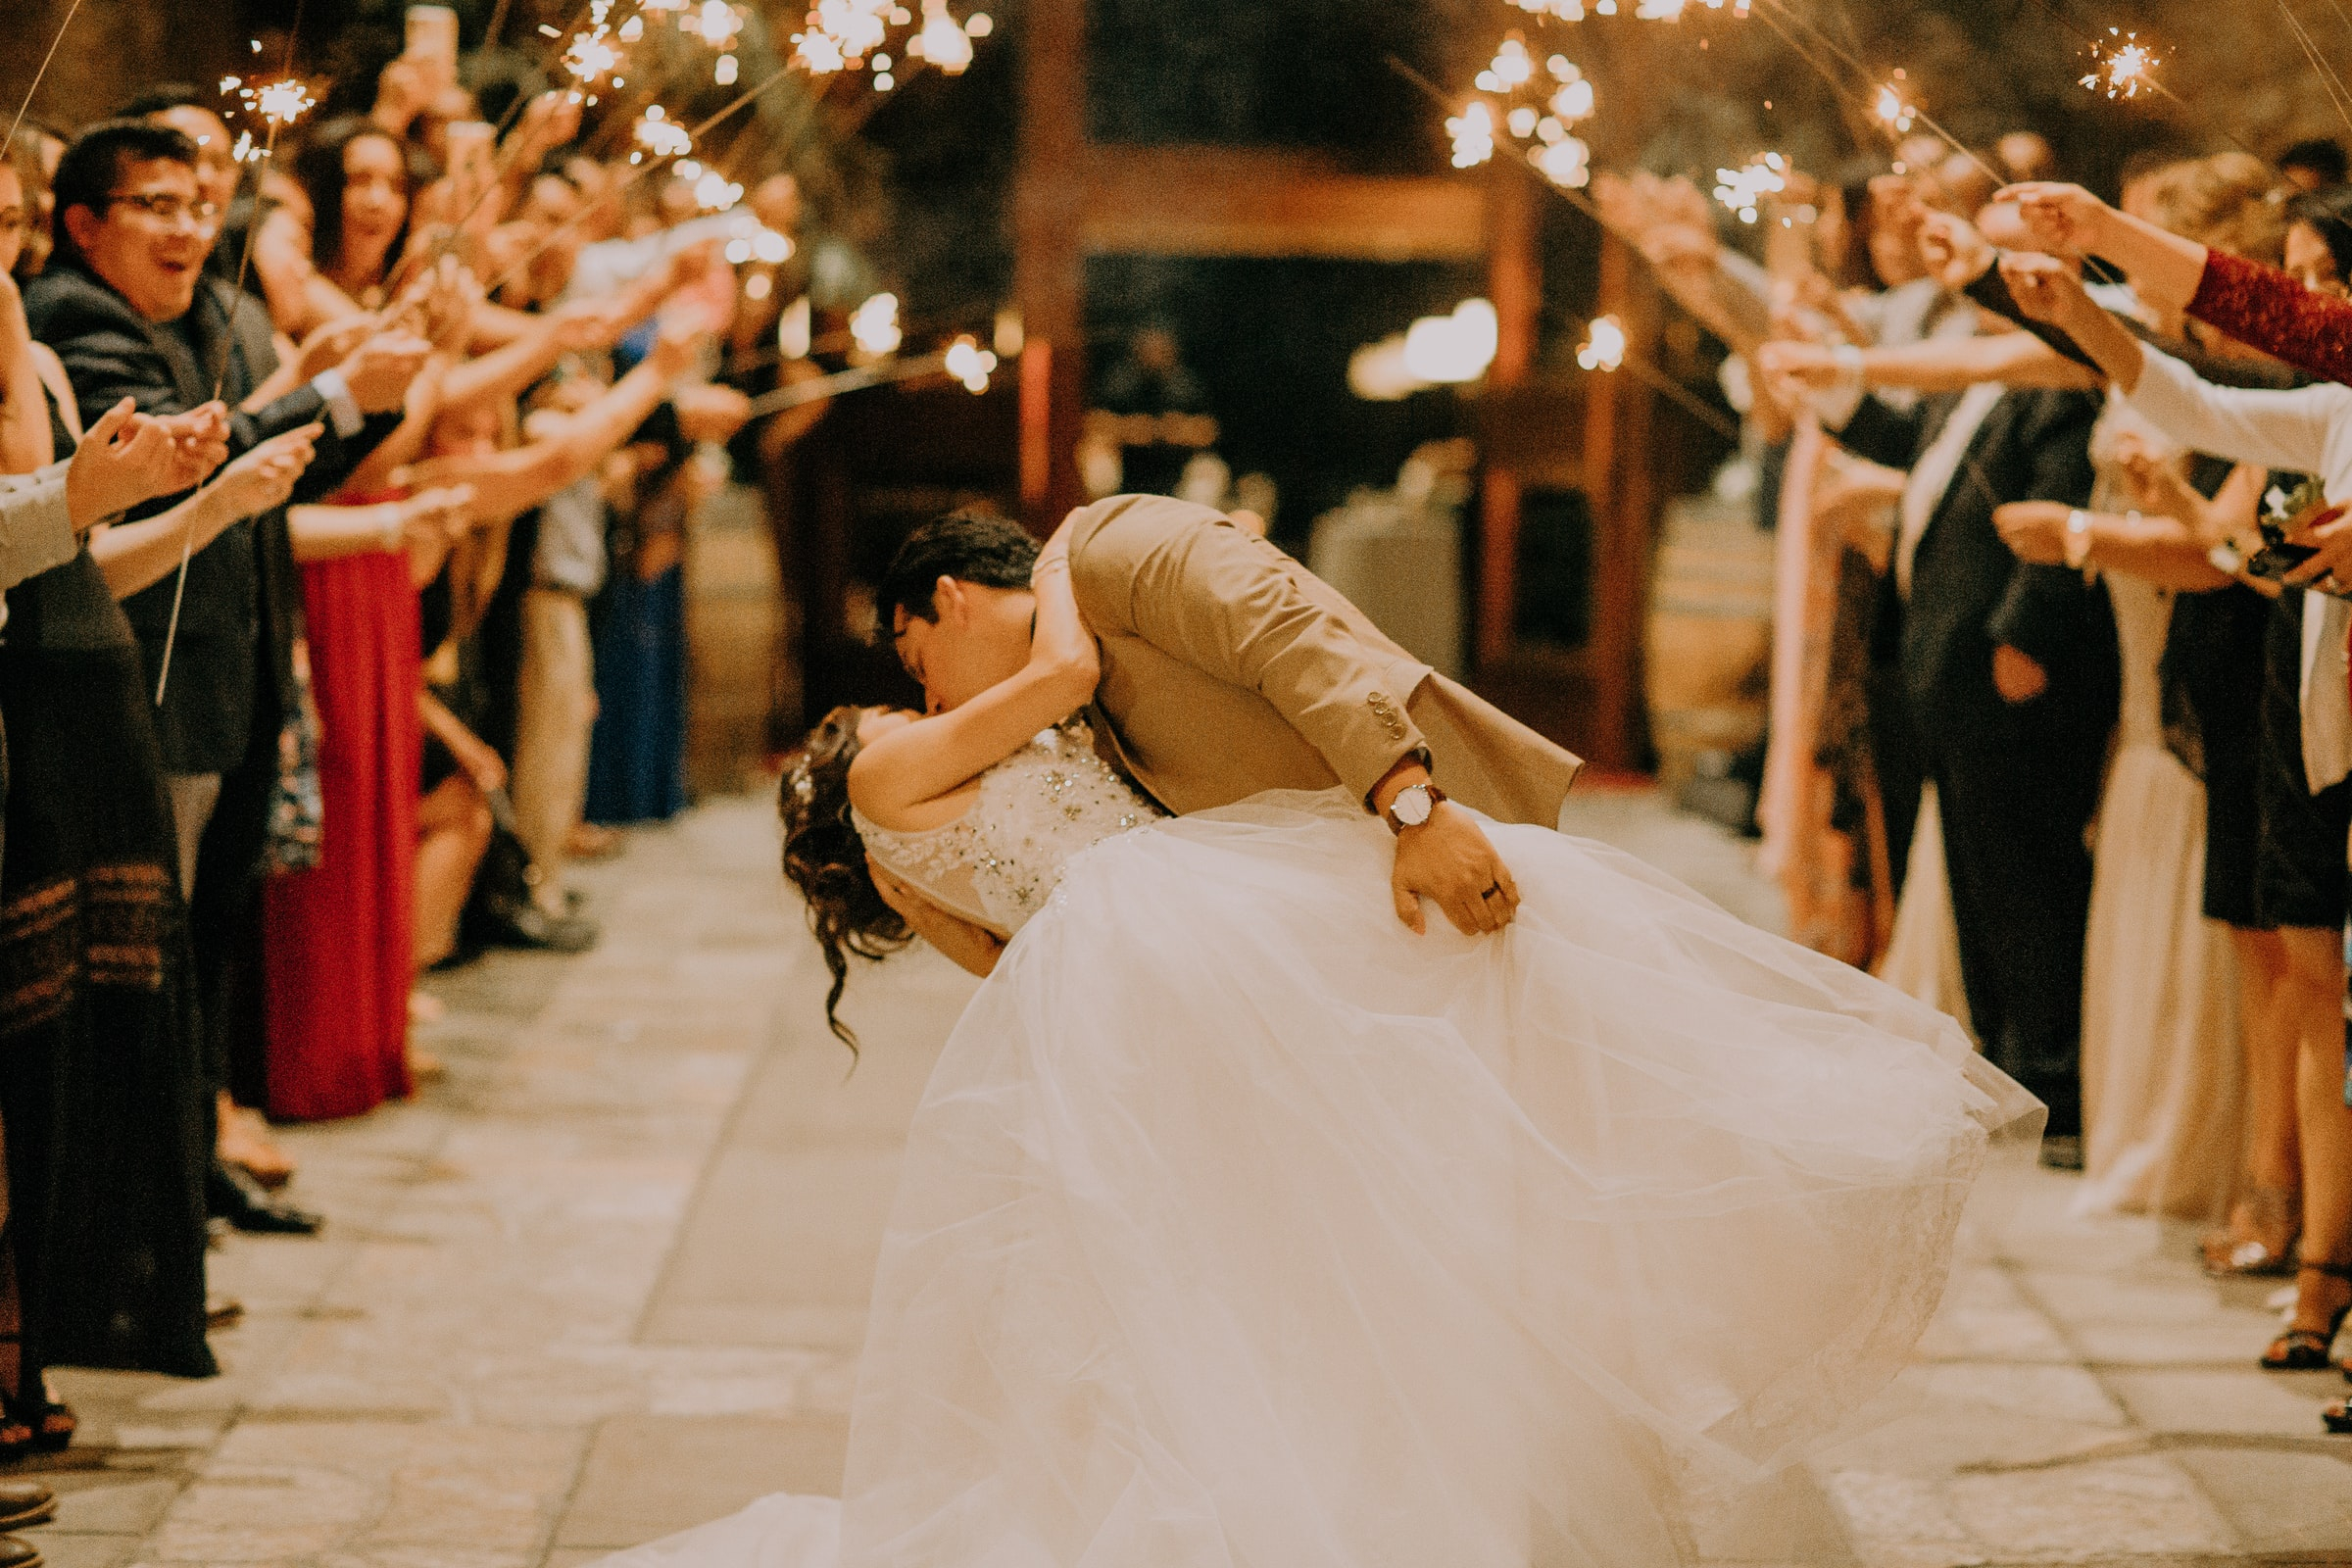 Frugal but Fabulous: 5 Tips for Planning a Wedding on a Budget